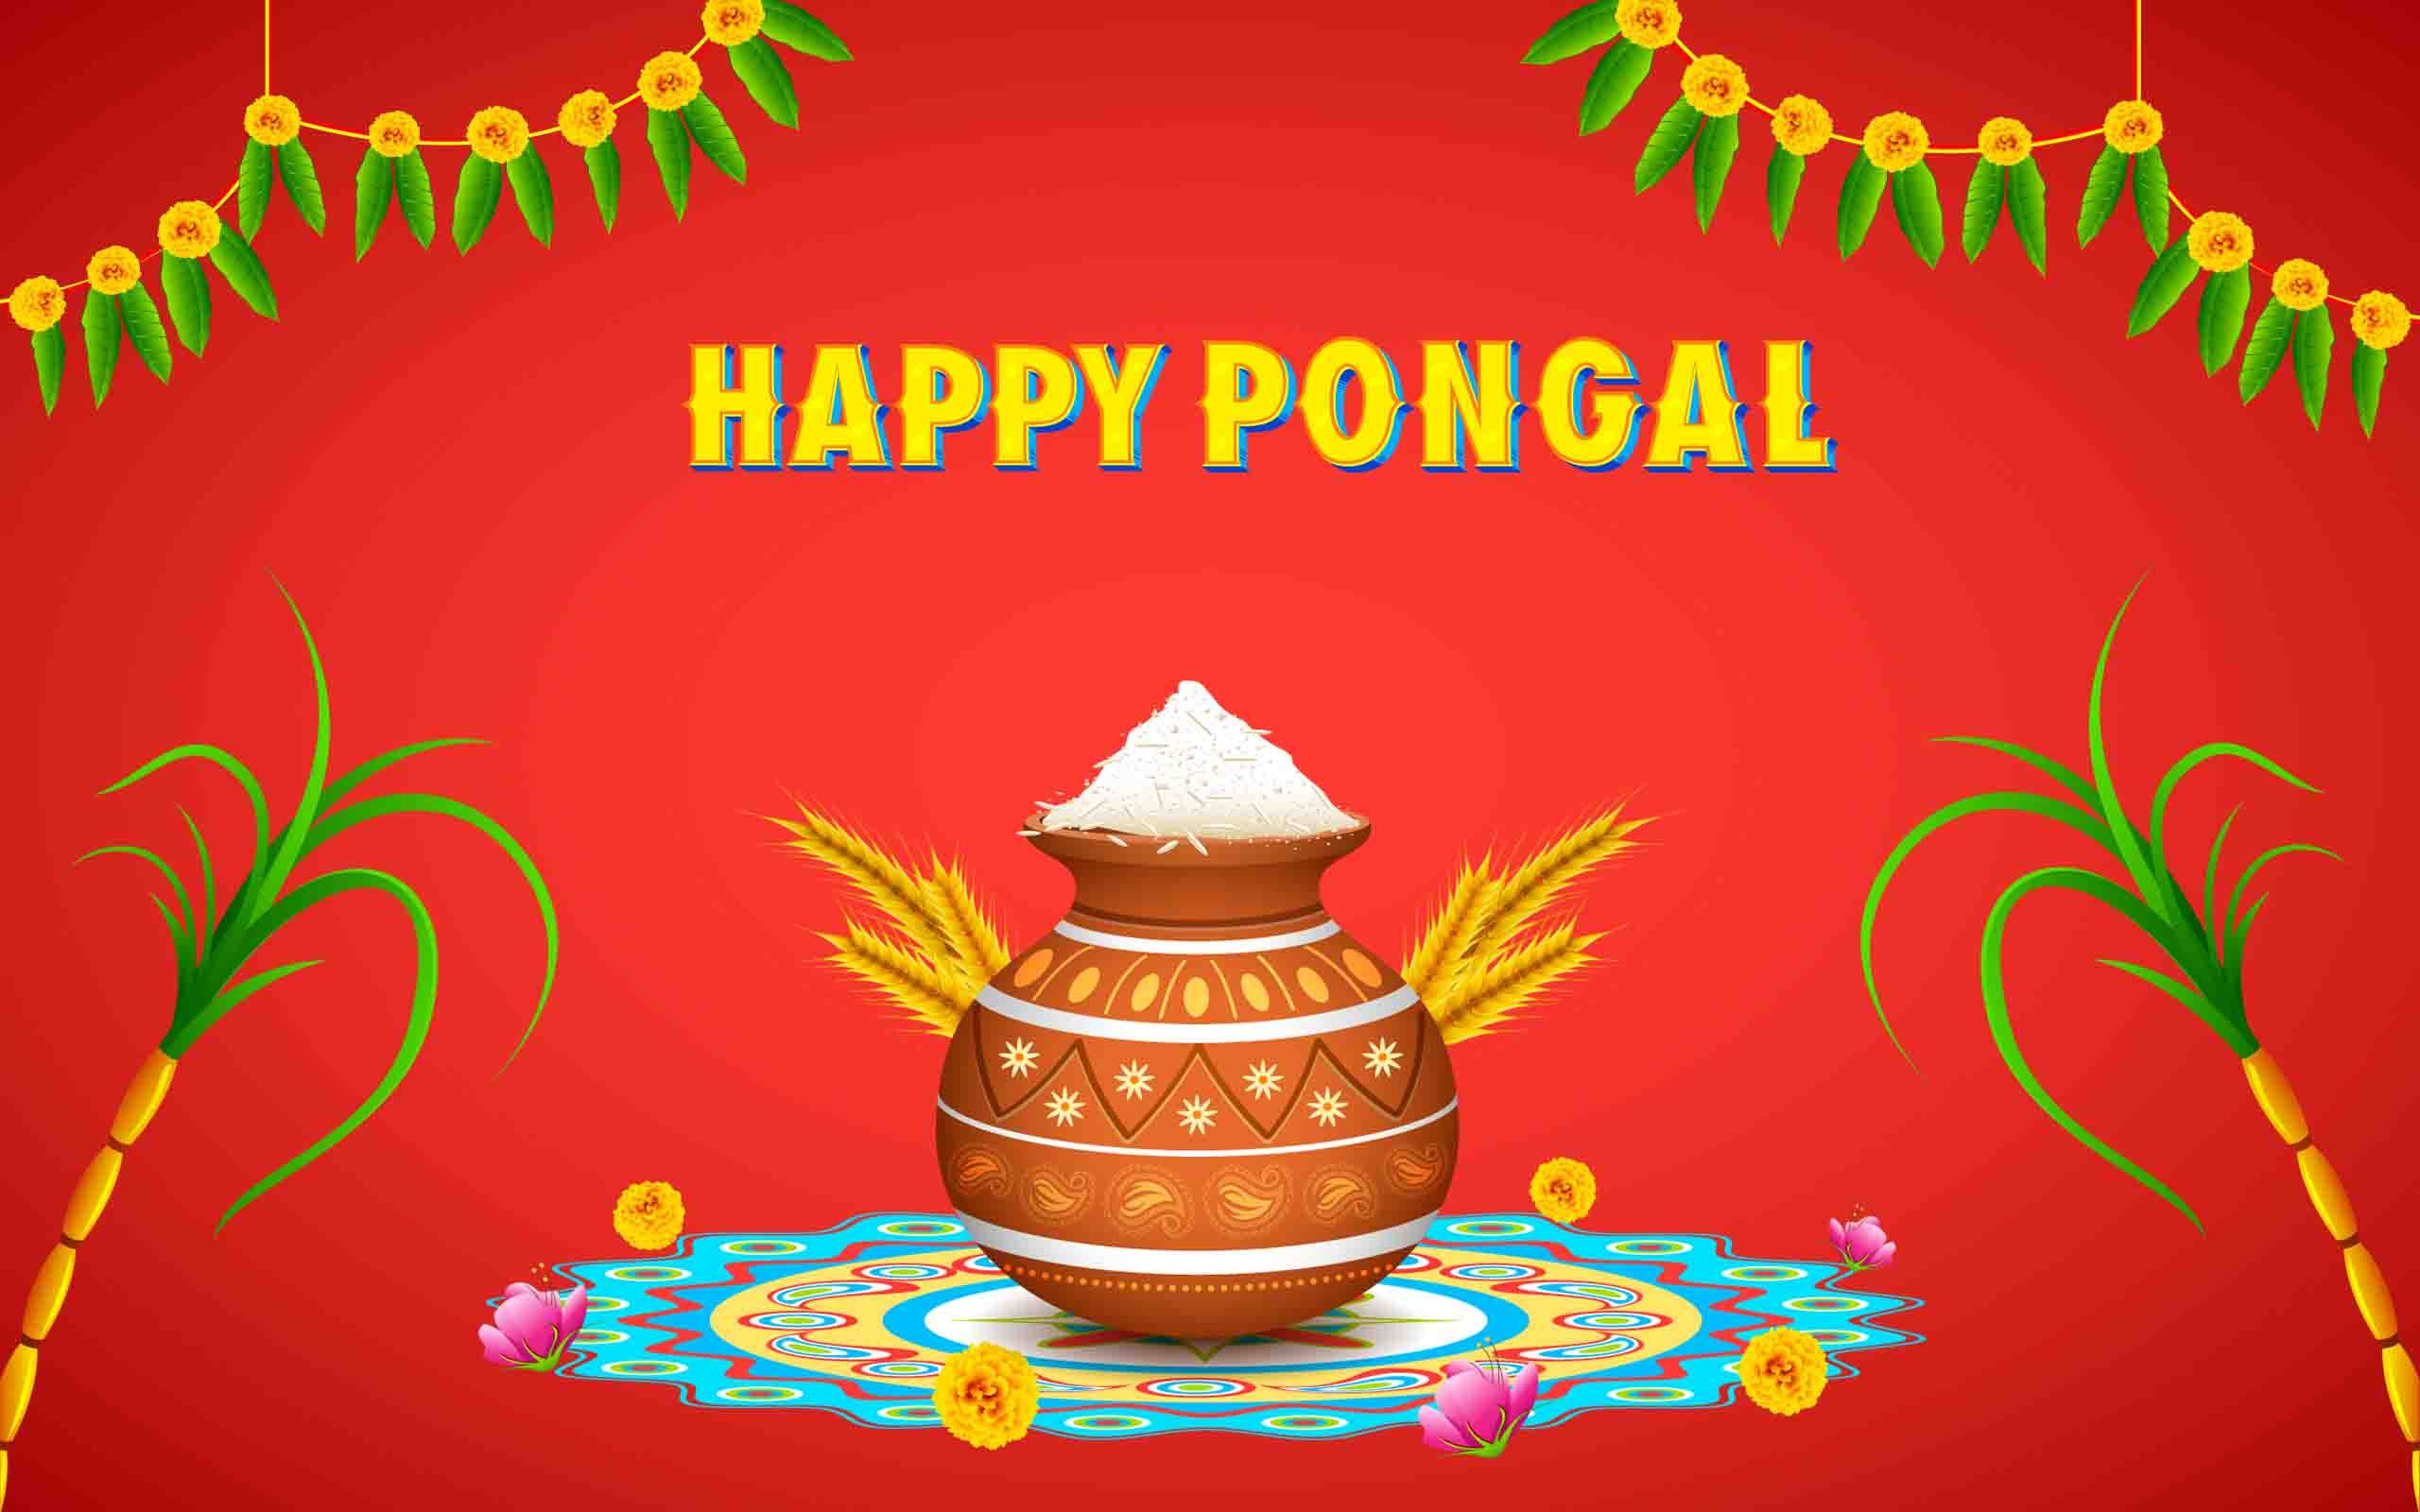 Pongal Festival Wallpapers Modern Pinterest Mattu Pongal And